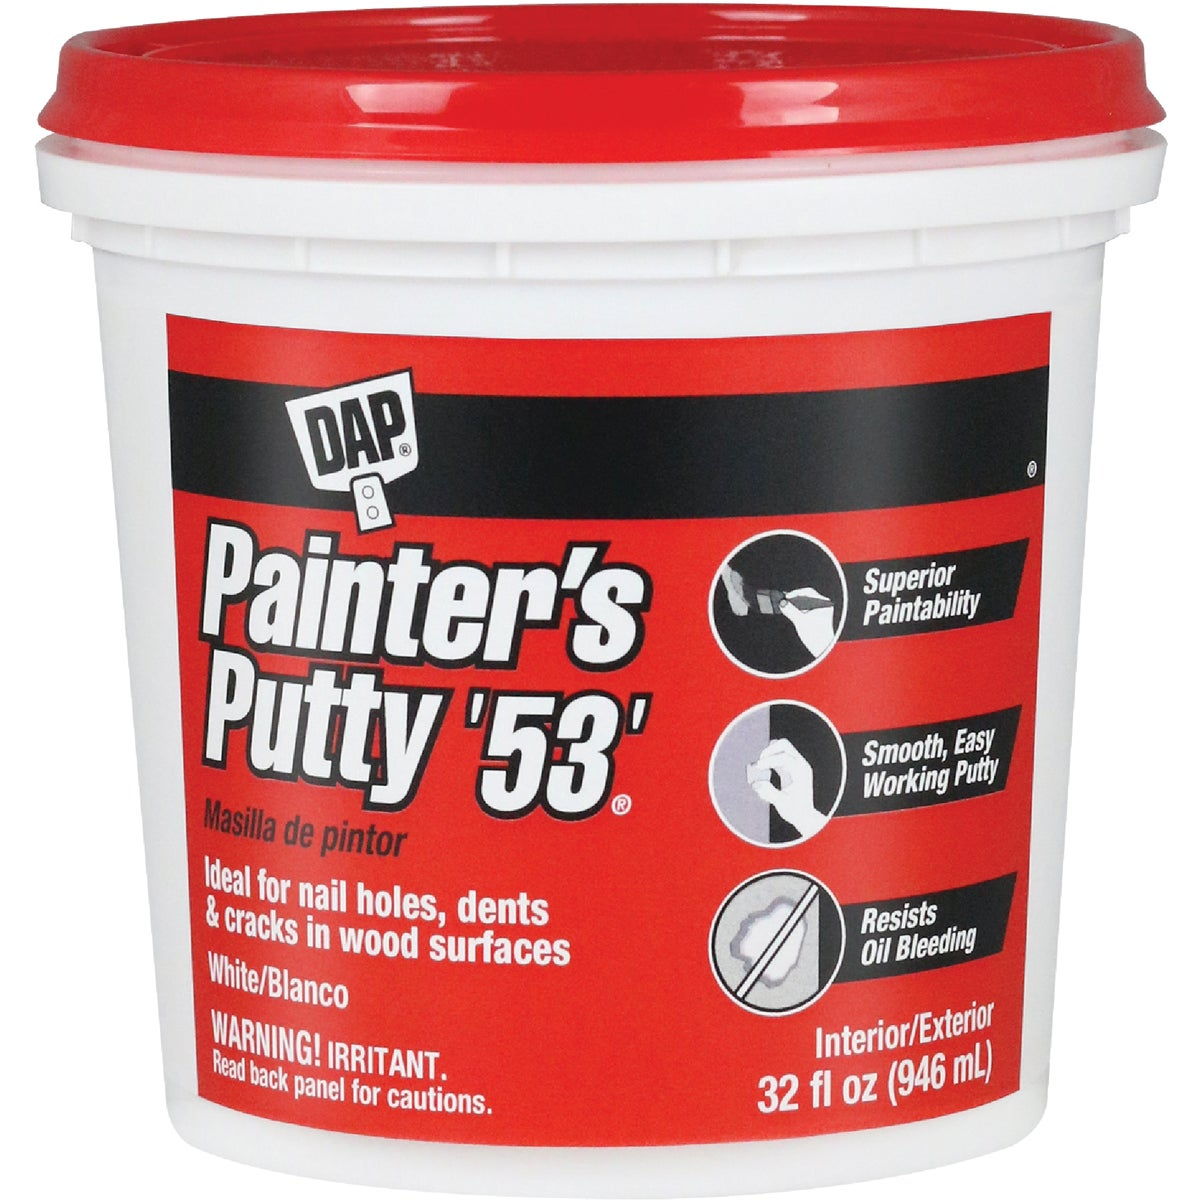 WHITE PAINTER'S PUTTY - 12244 by Dap Inc